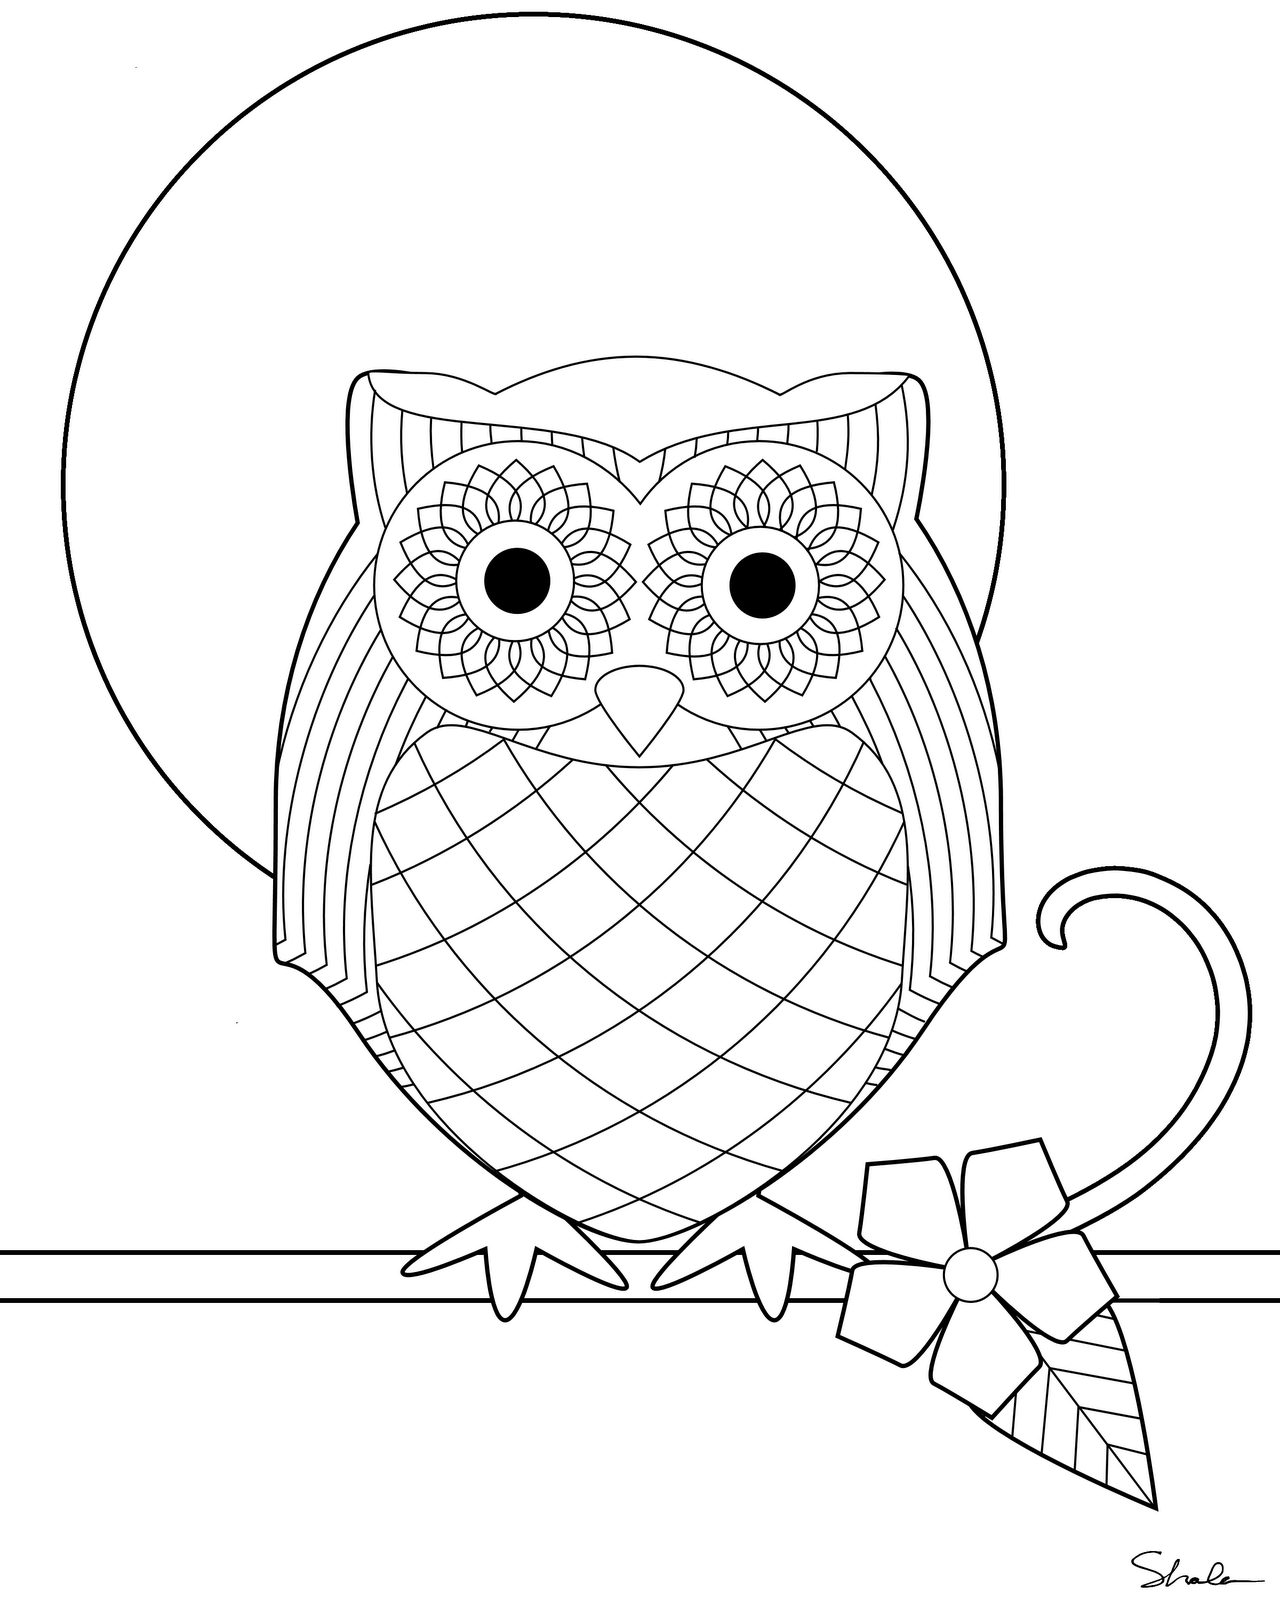 colouring picture of owl best printable owl coloring pages for adults ruby website picture owl of colouring